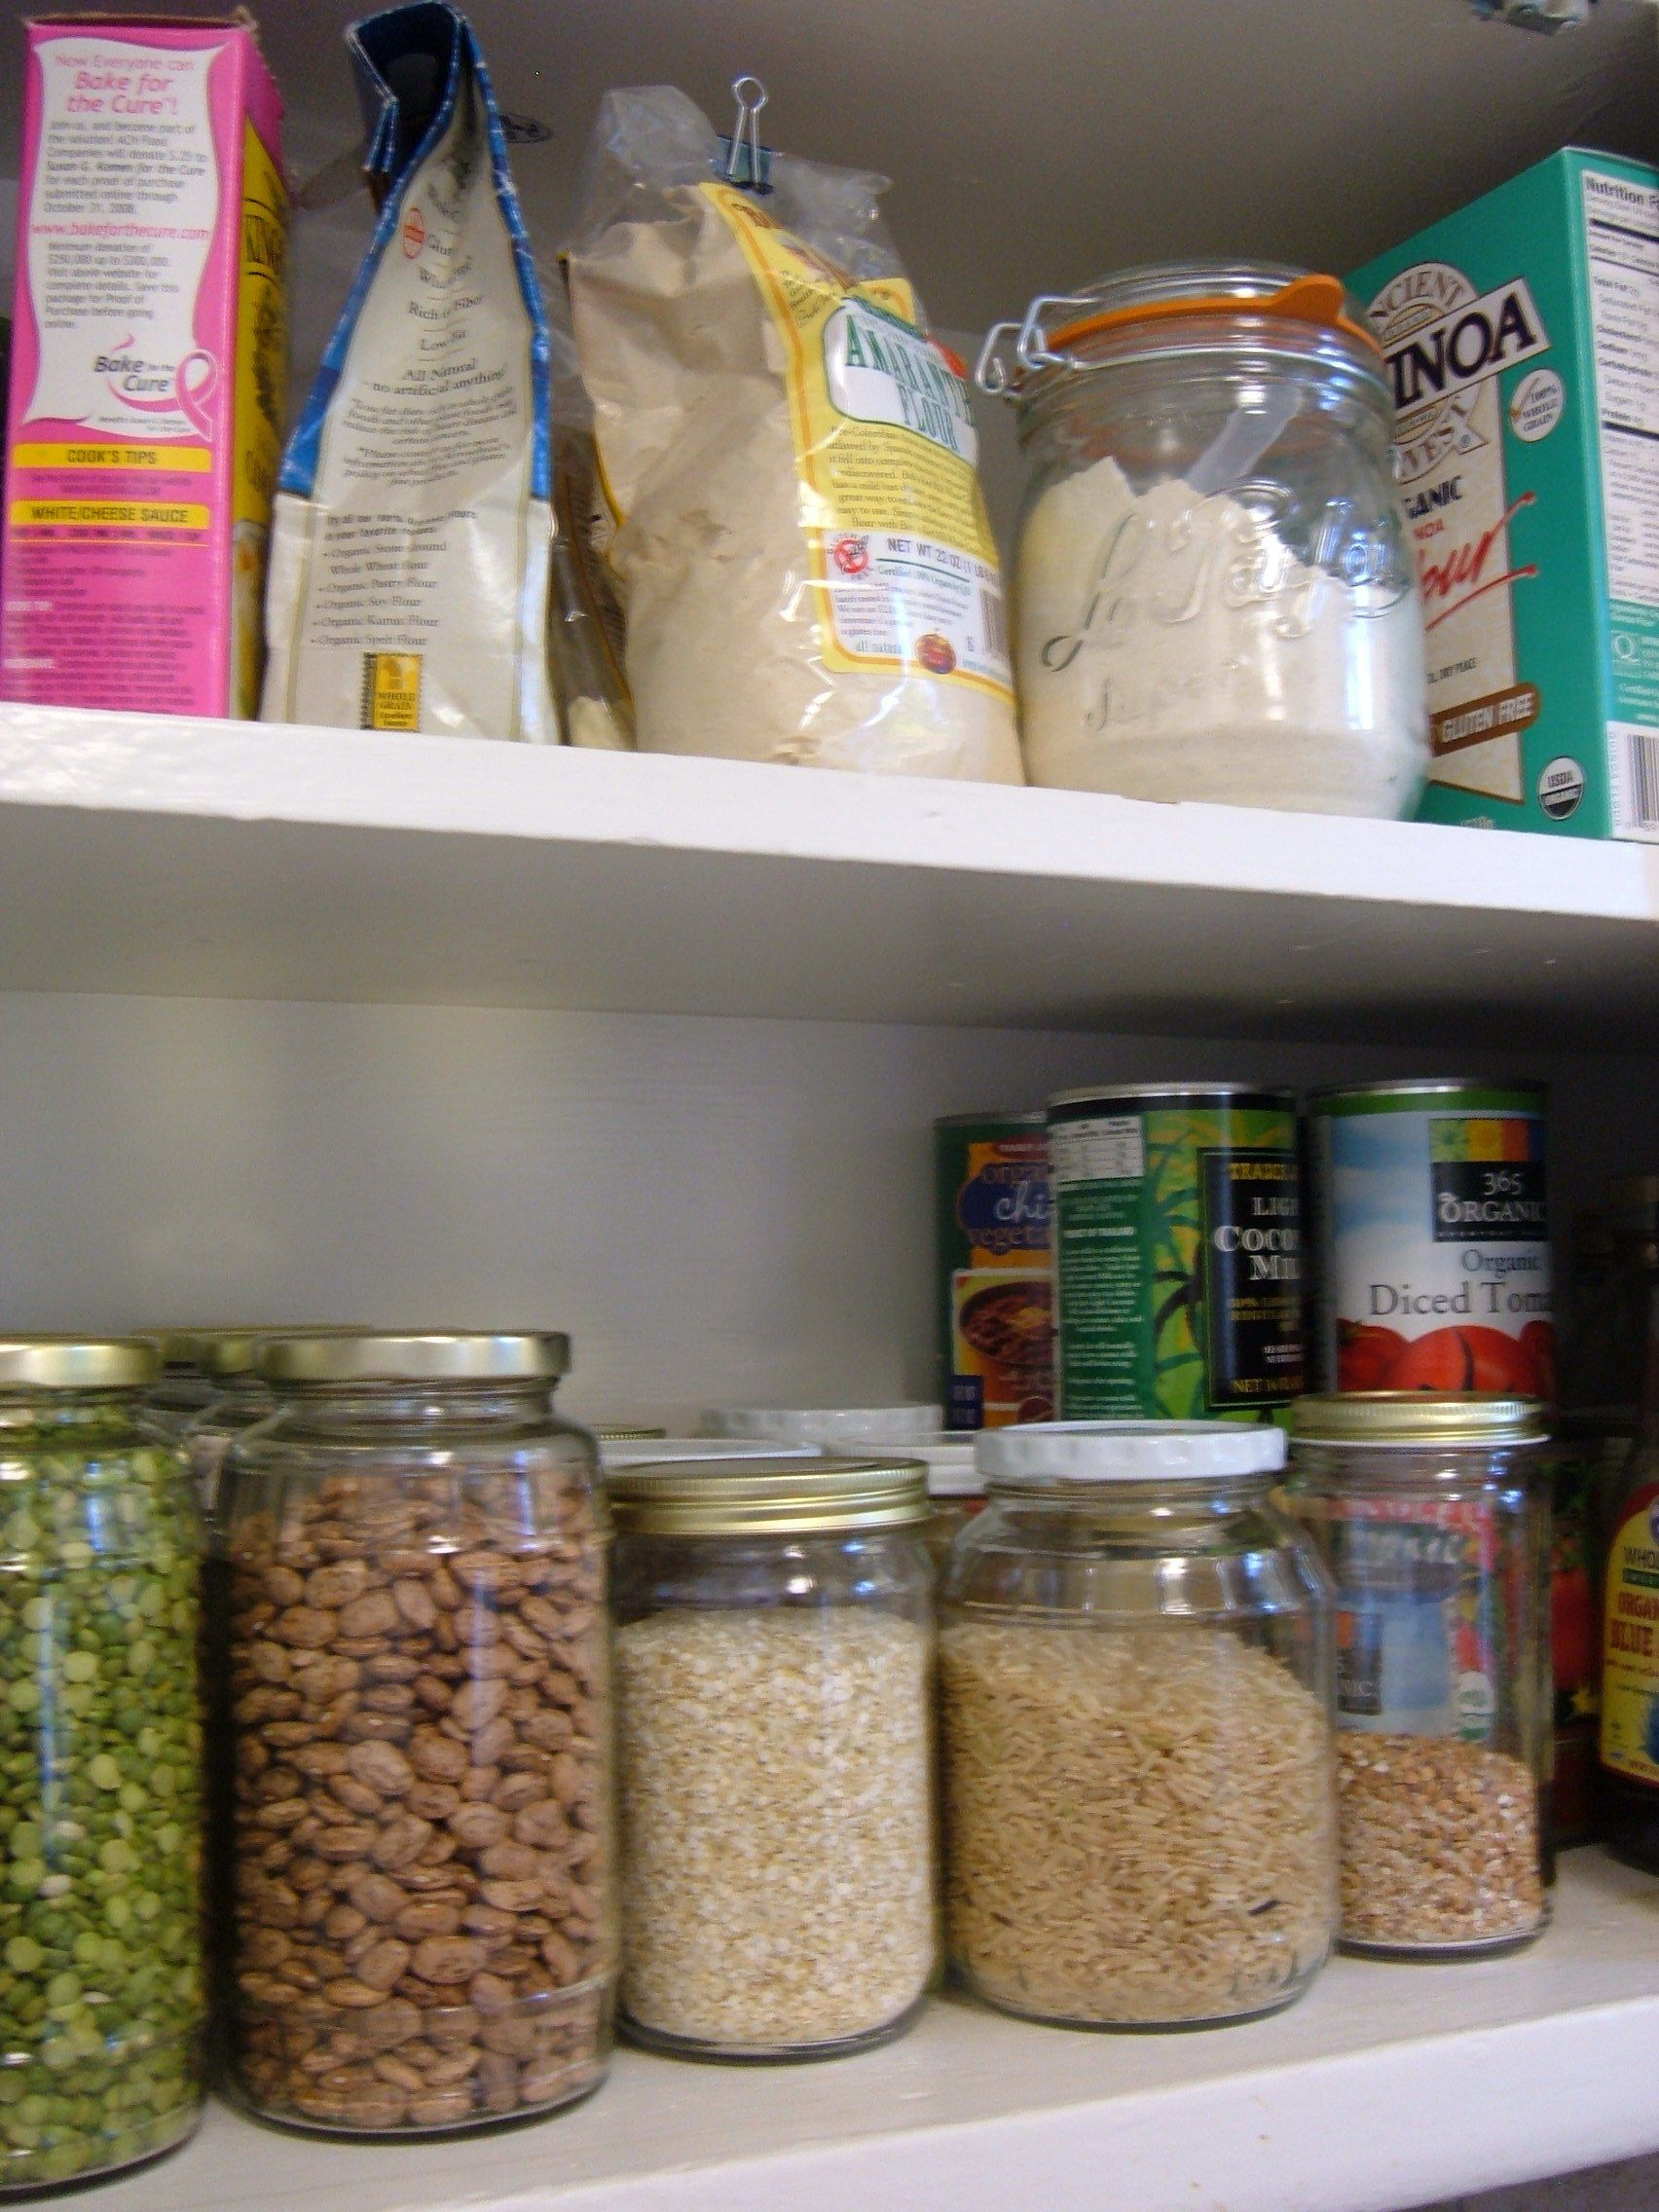 Pantry list for gluten-free, dairy-free, sugar-free living.